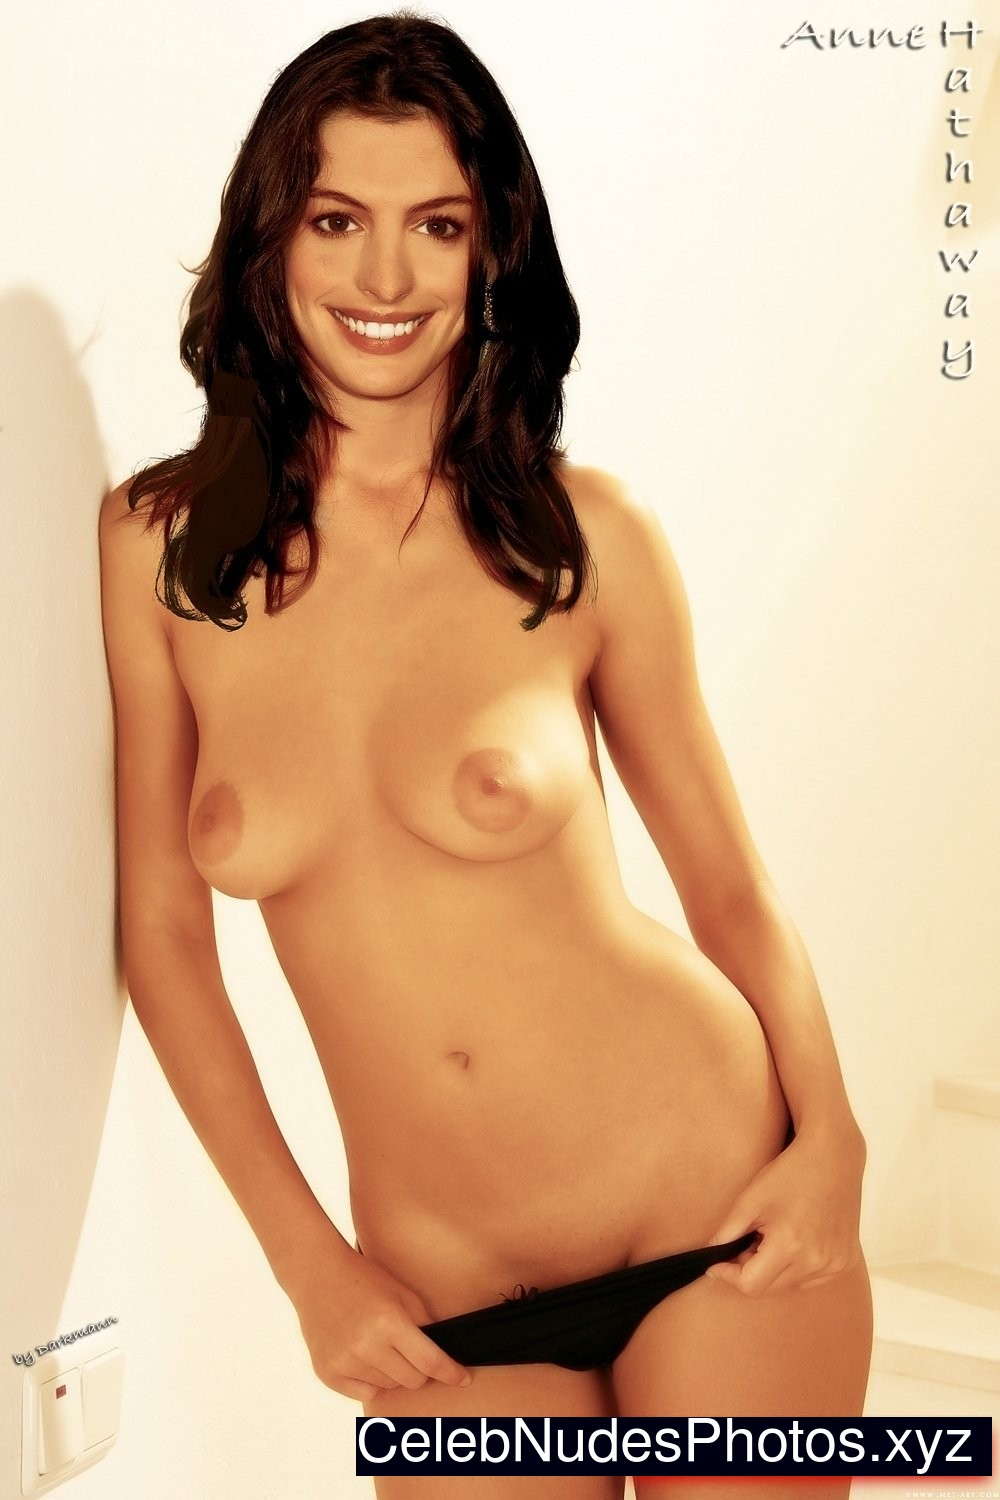 Anne Hathaway naked celebrities